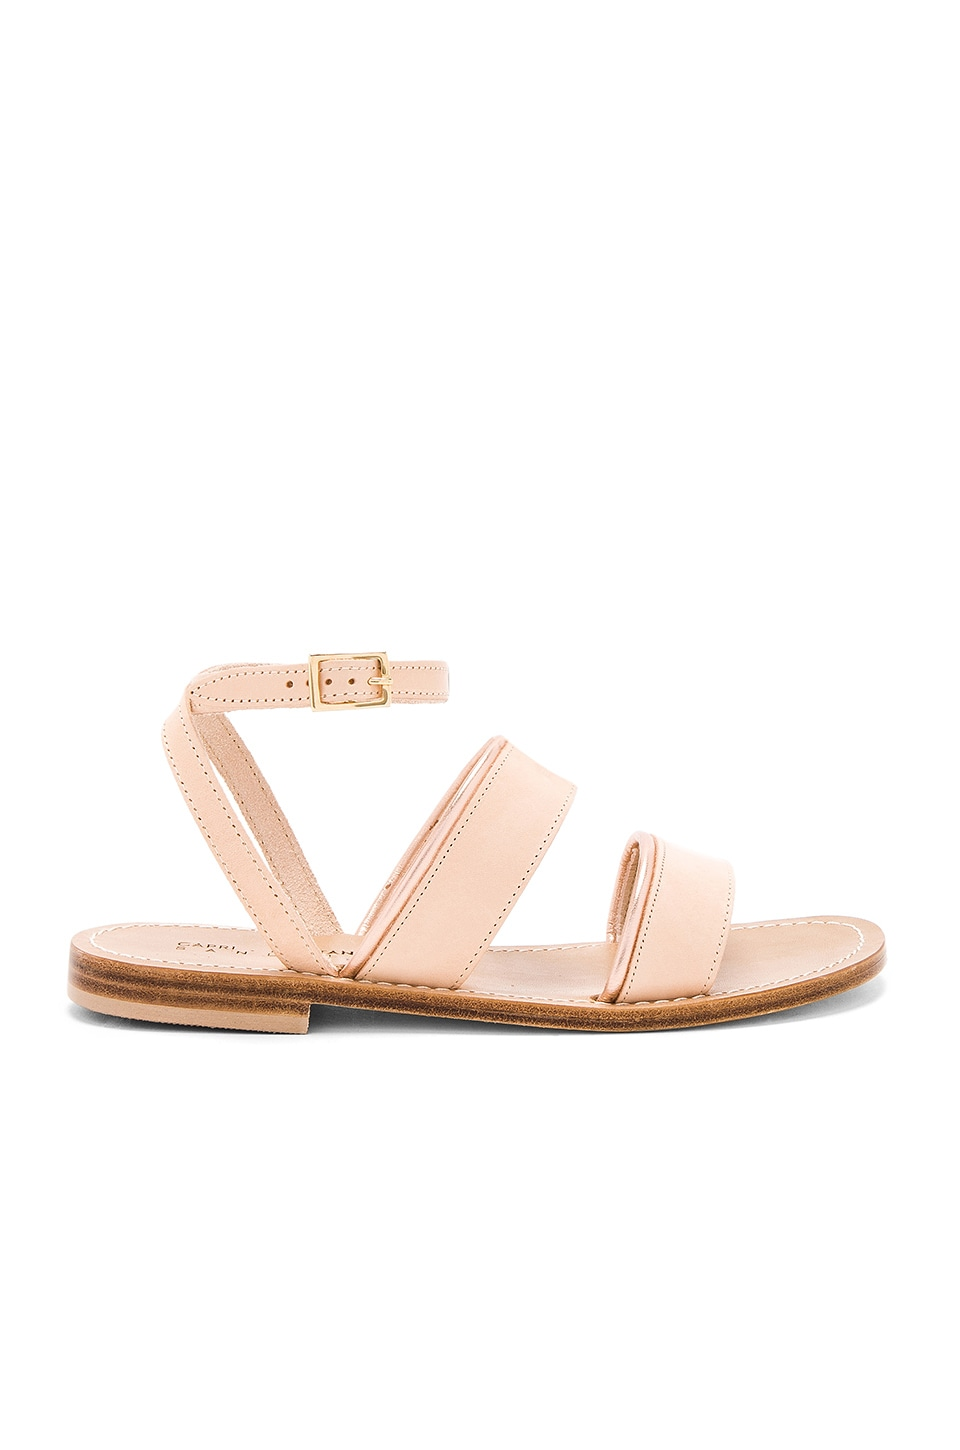 Shop Capri Positano Classic Classic Band Trim Sandal shoes